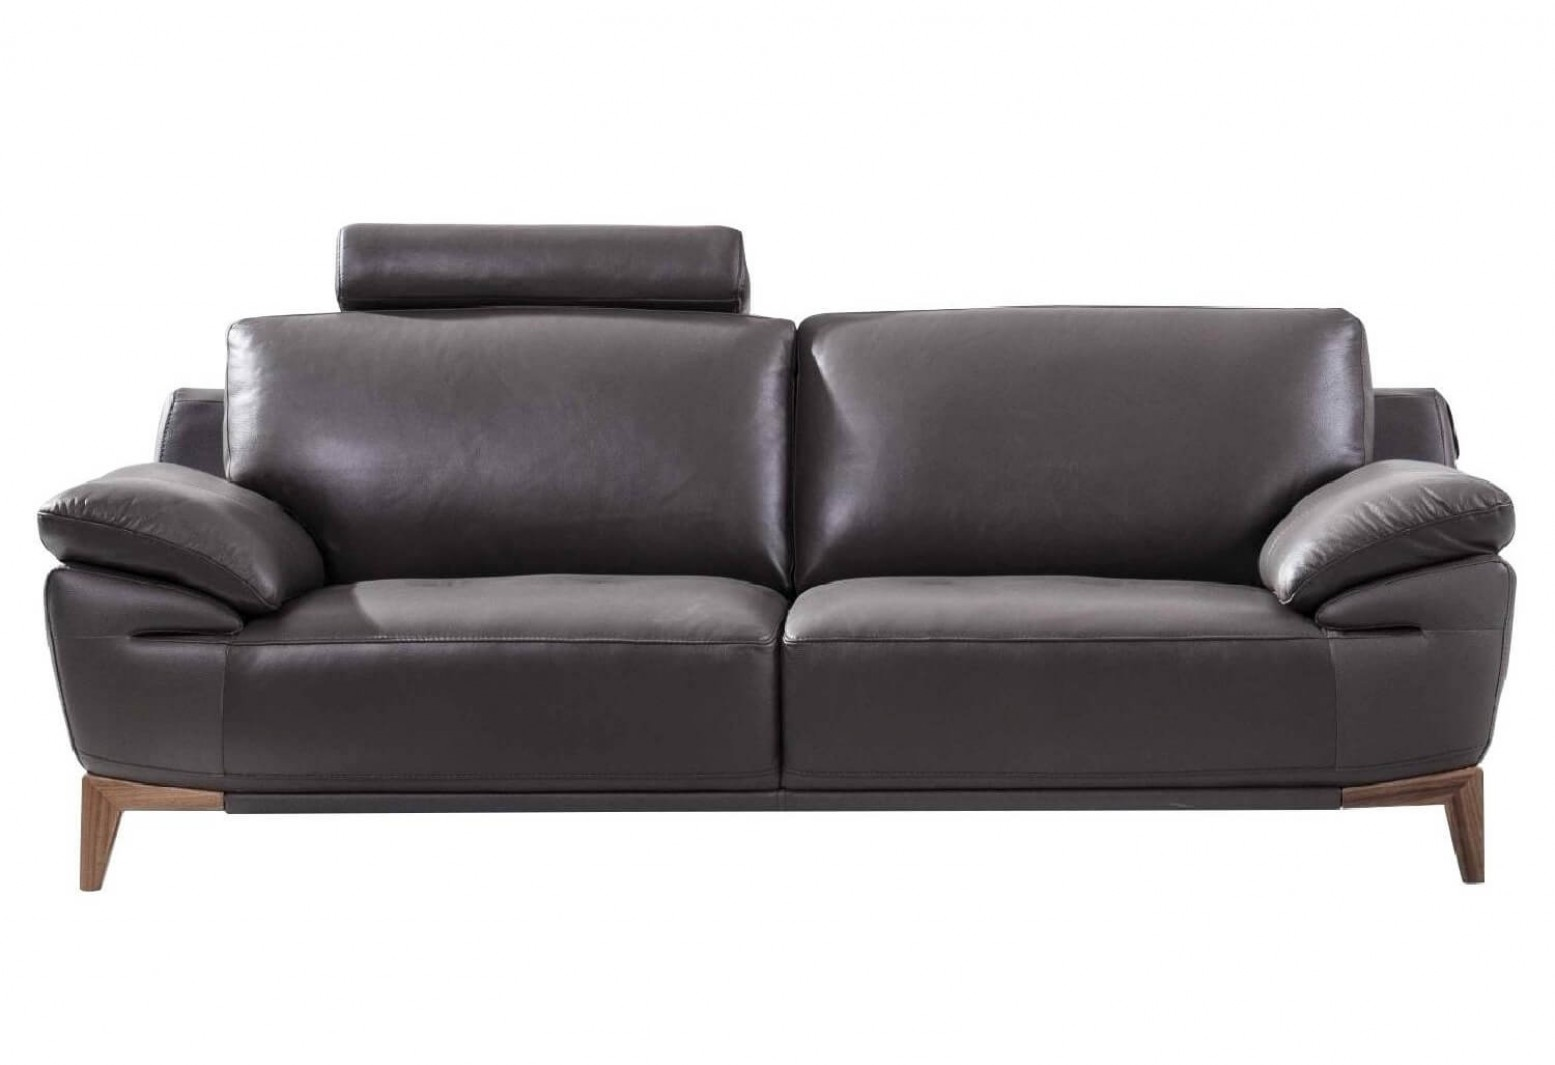 S93 Top Grain Leather Sofa By Beverly